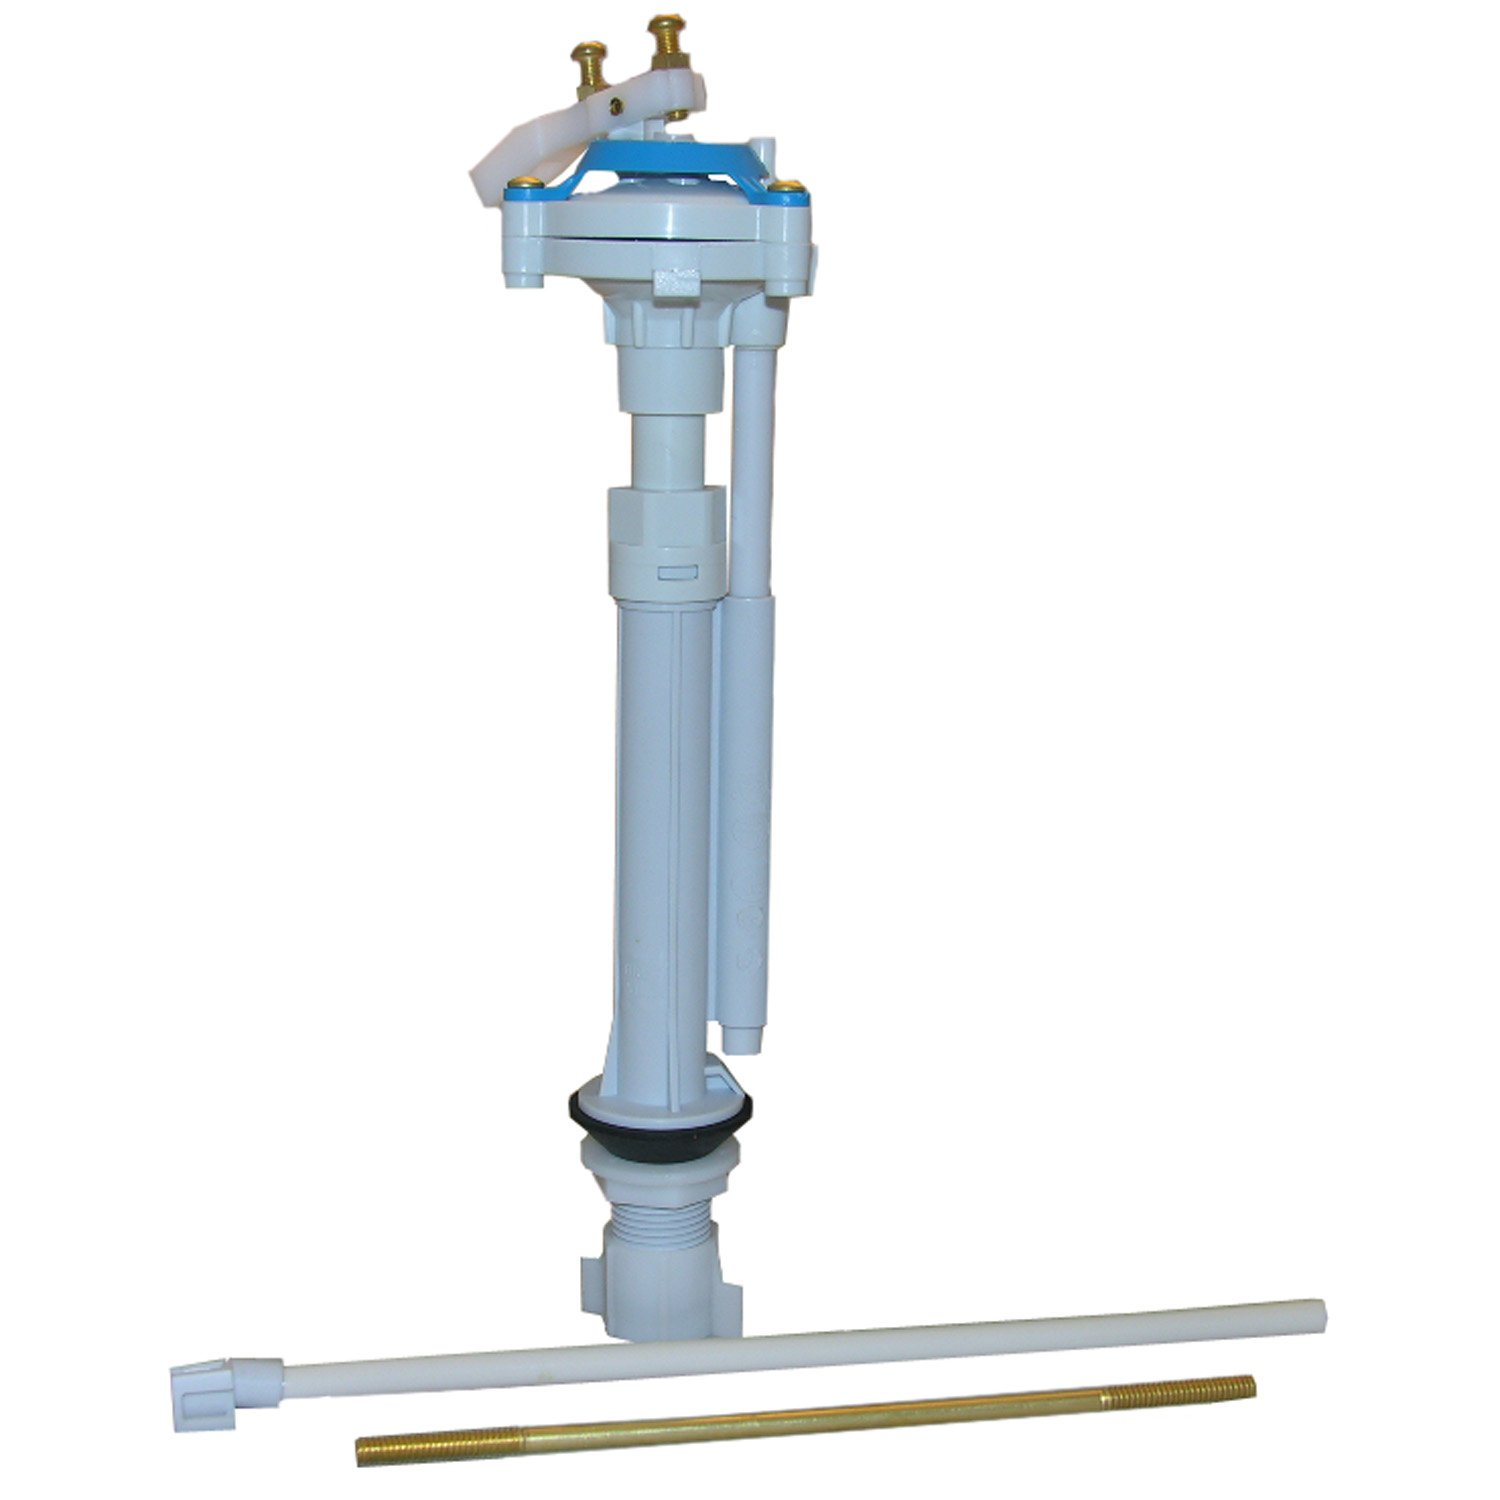 LASCO 04-4039-MASTER 781346 Toilet Ballcock with Anti-Syphon Plastic Adjustable Fill Valve with Float Rod Refill Tube and Nut, 9'' x 13'' by LASCO